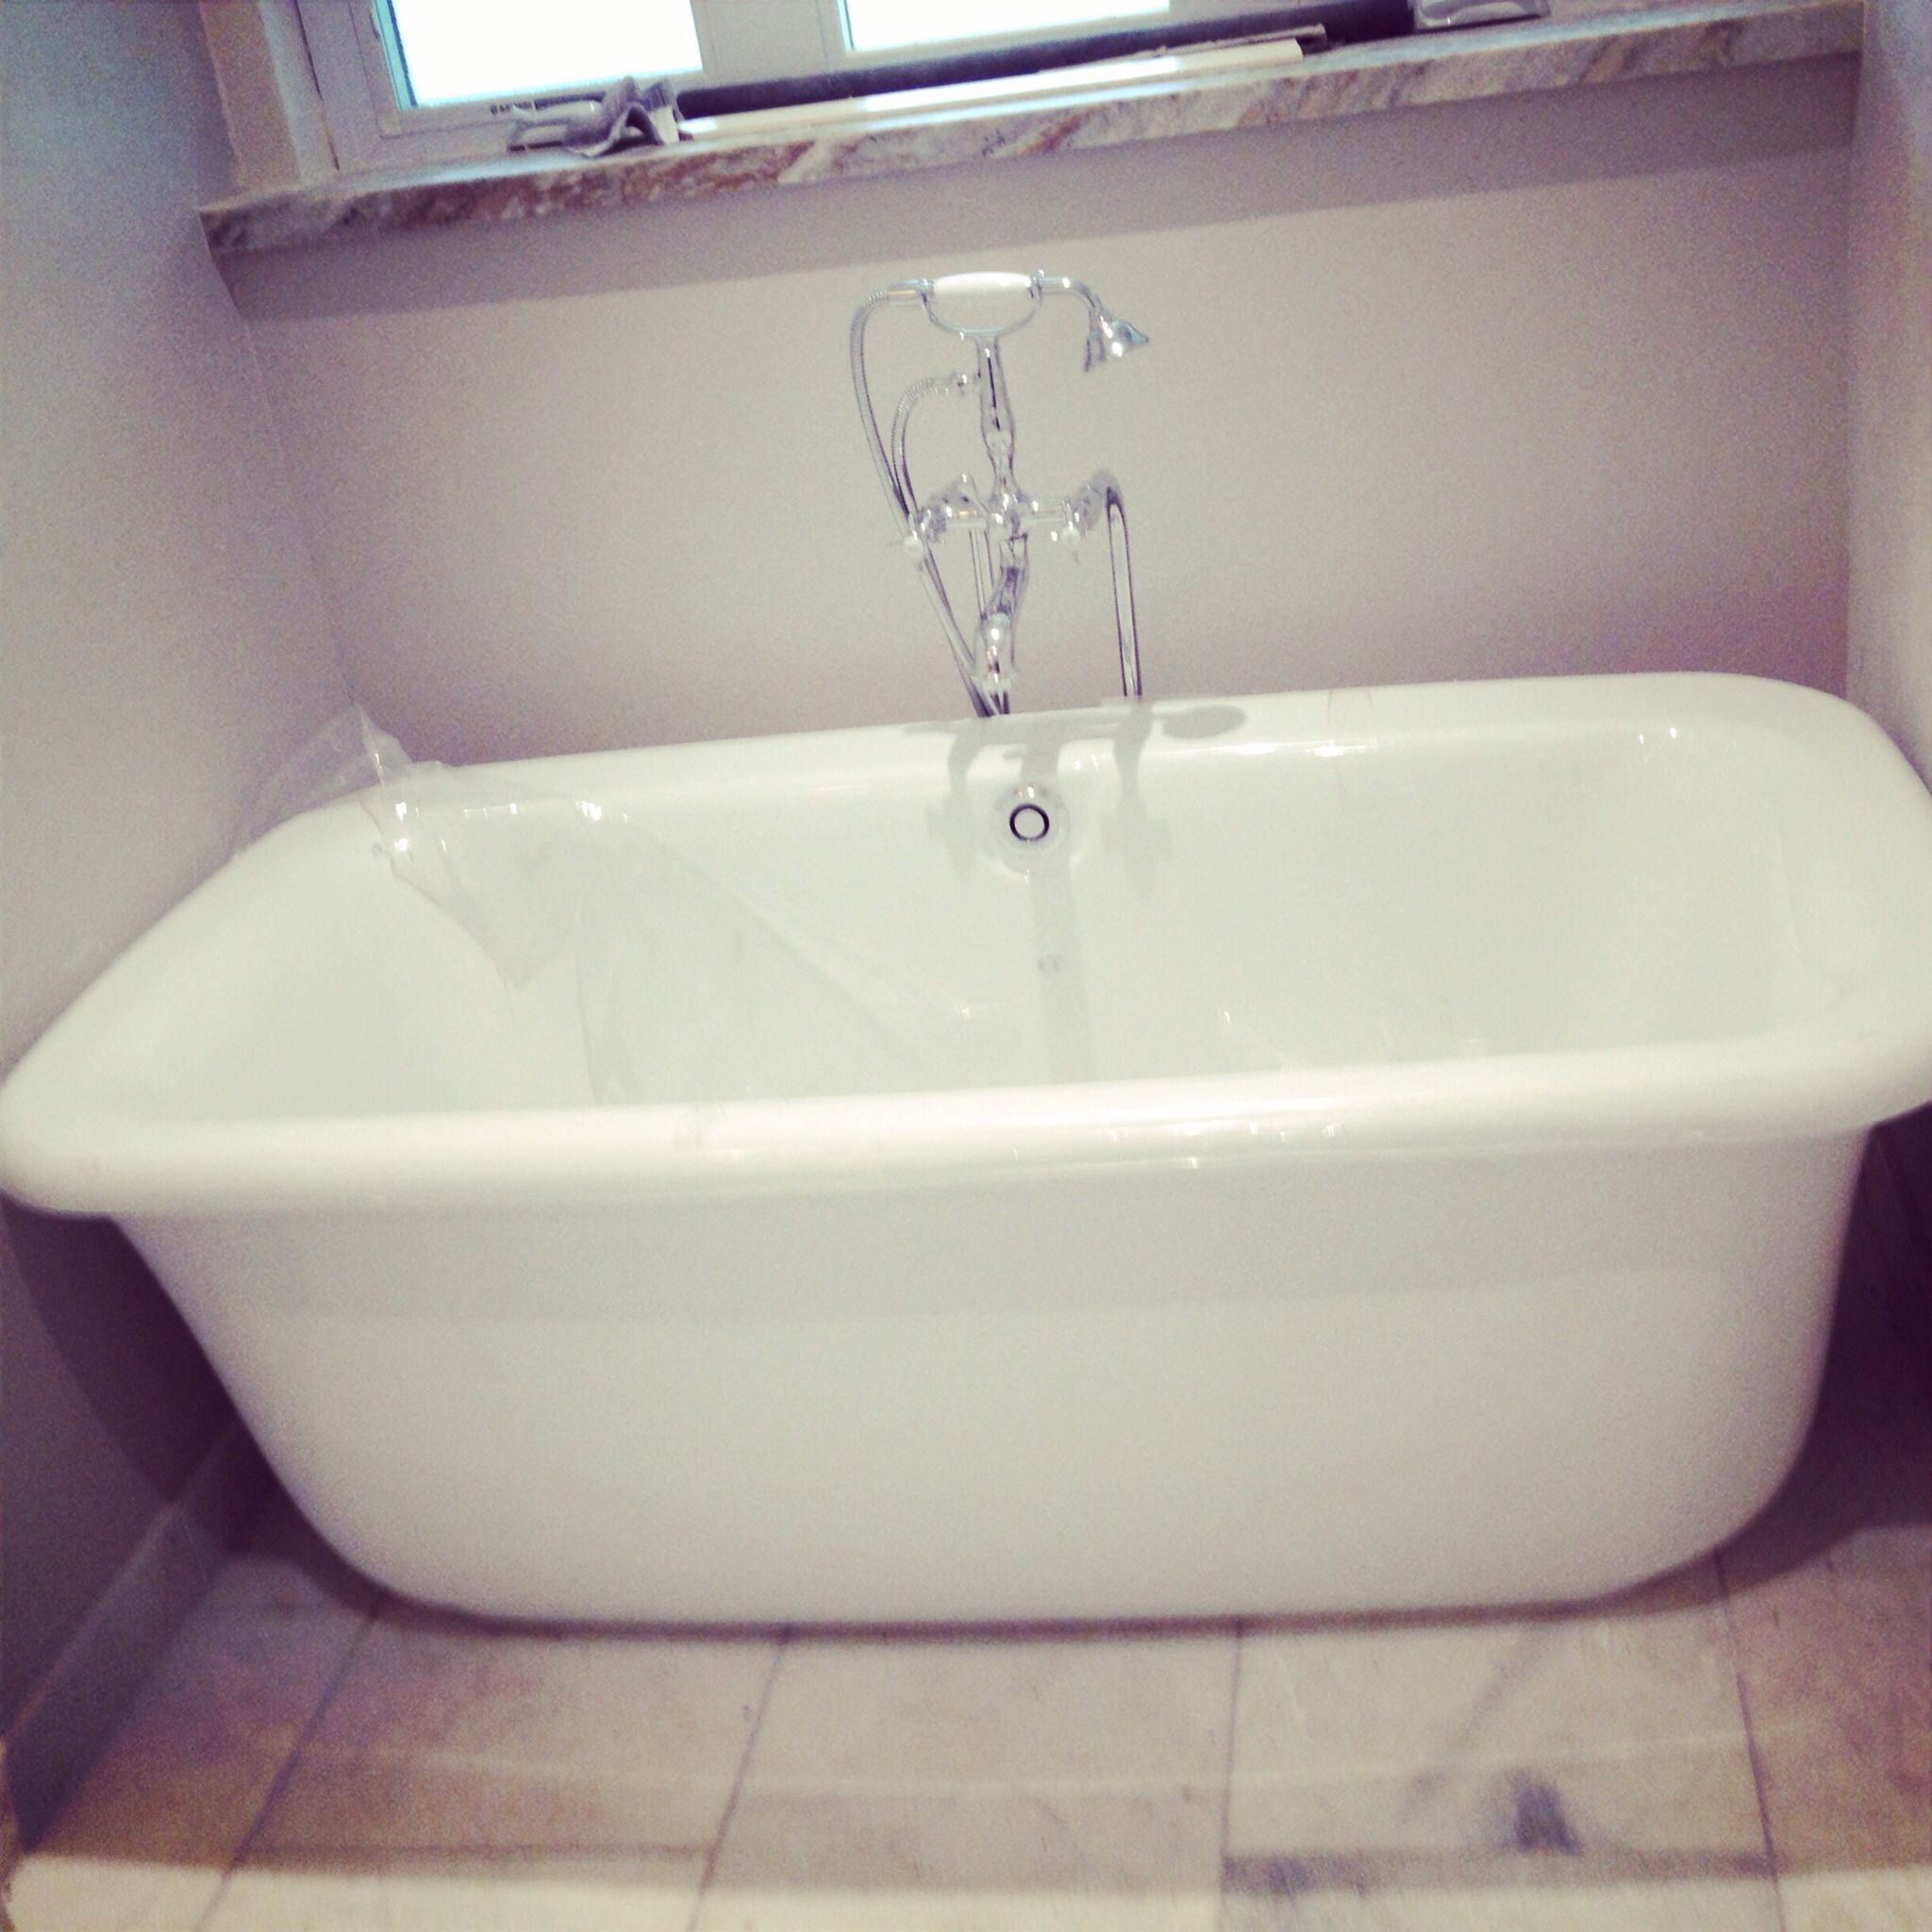 Maax tub Miles | Bathroom | Pinterest | Tubs, Bathtubs and Room